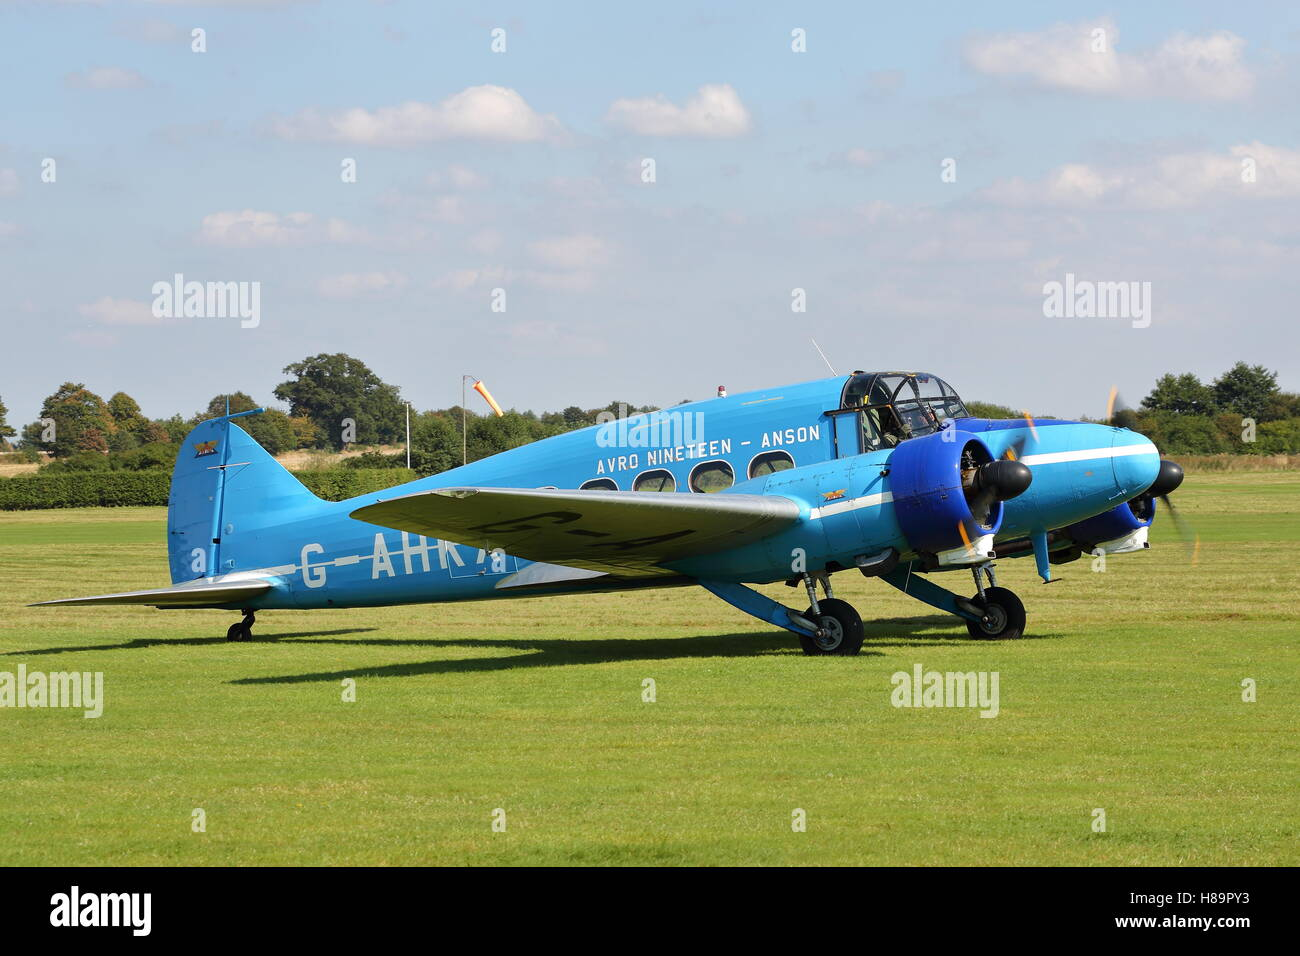 BAE Systems' Avro 652 Anson G-AHKX at an Air Show at Old Warden, UK - Stock Image